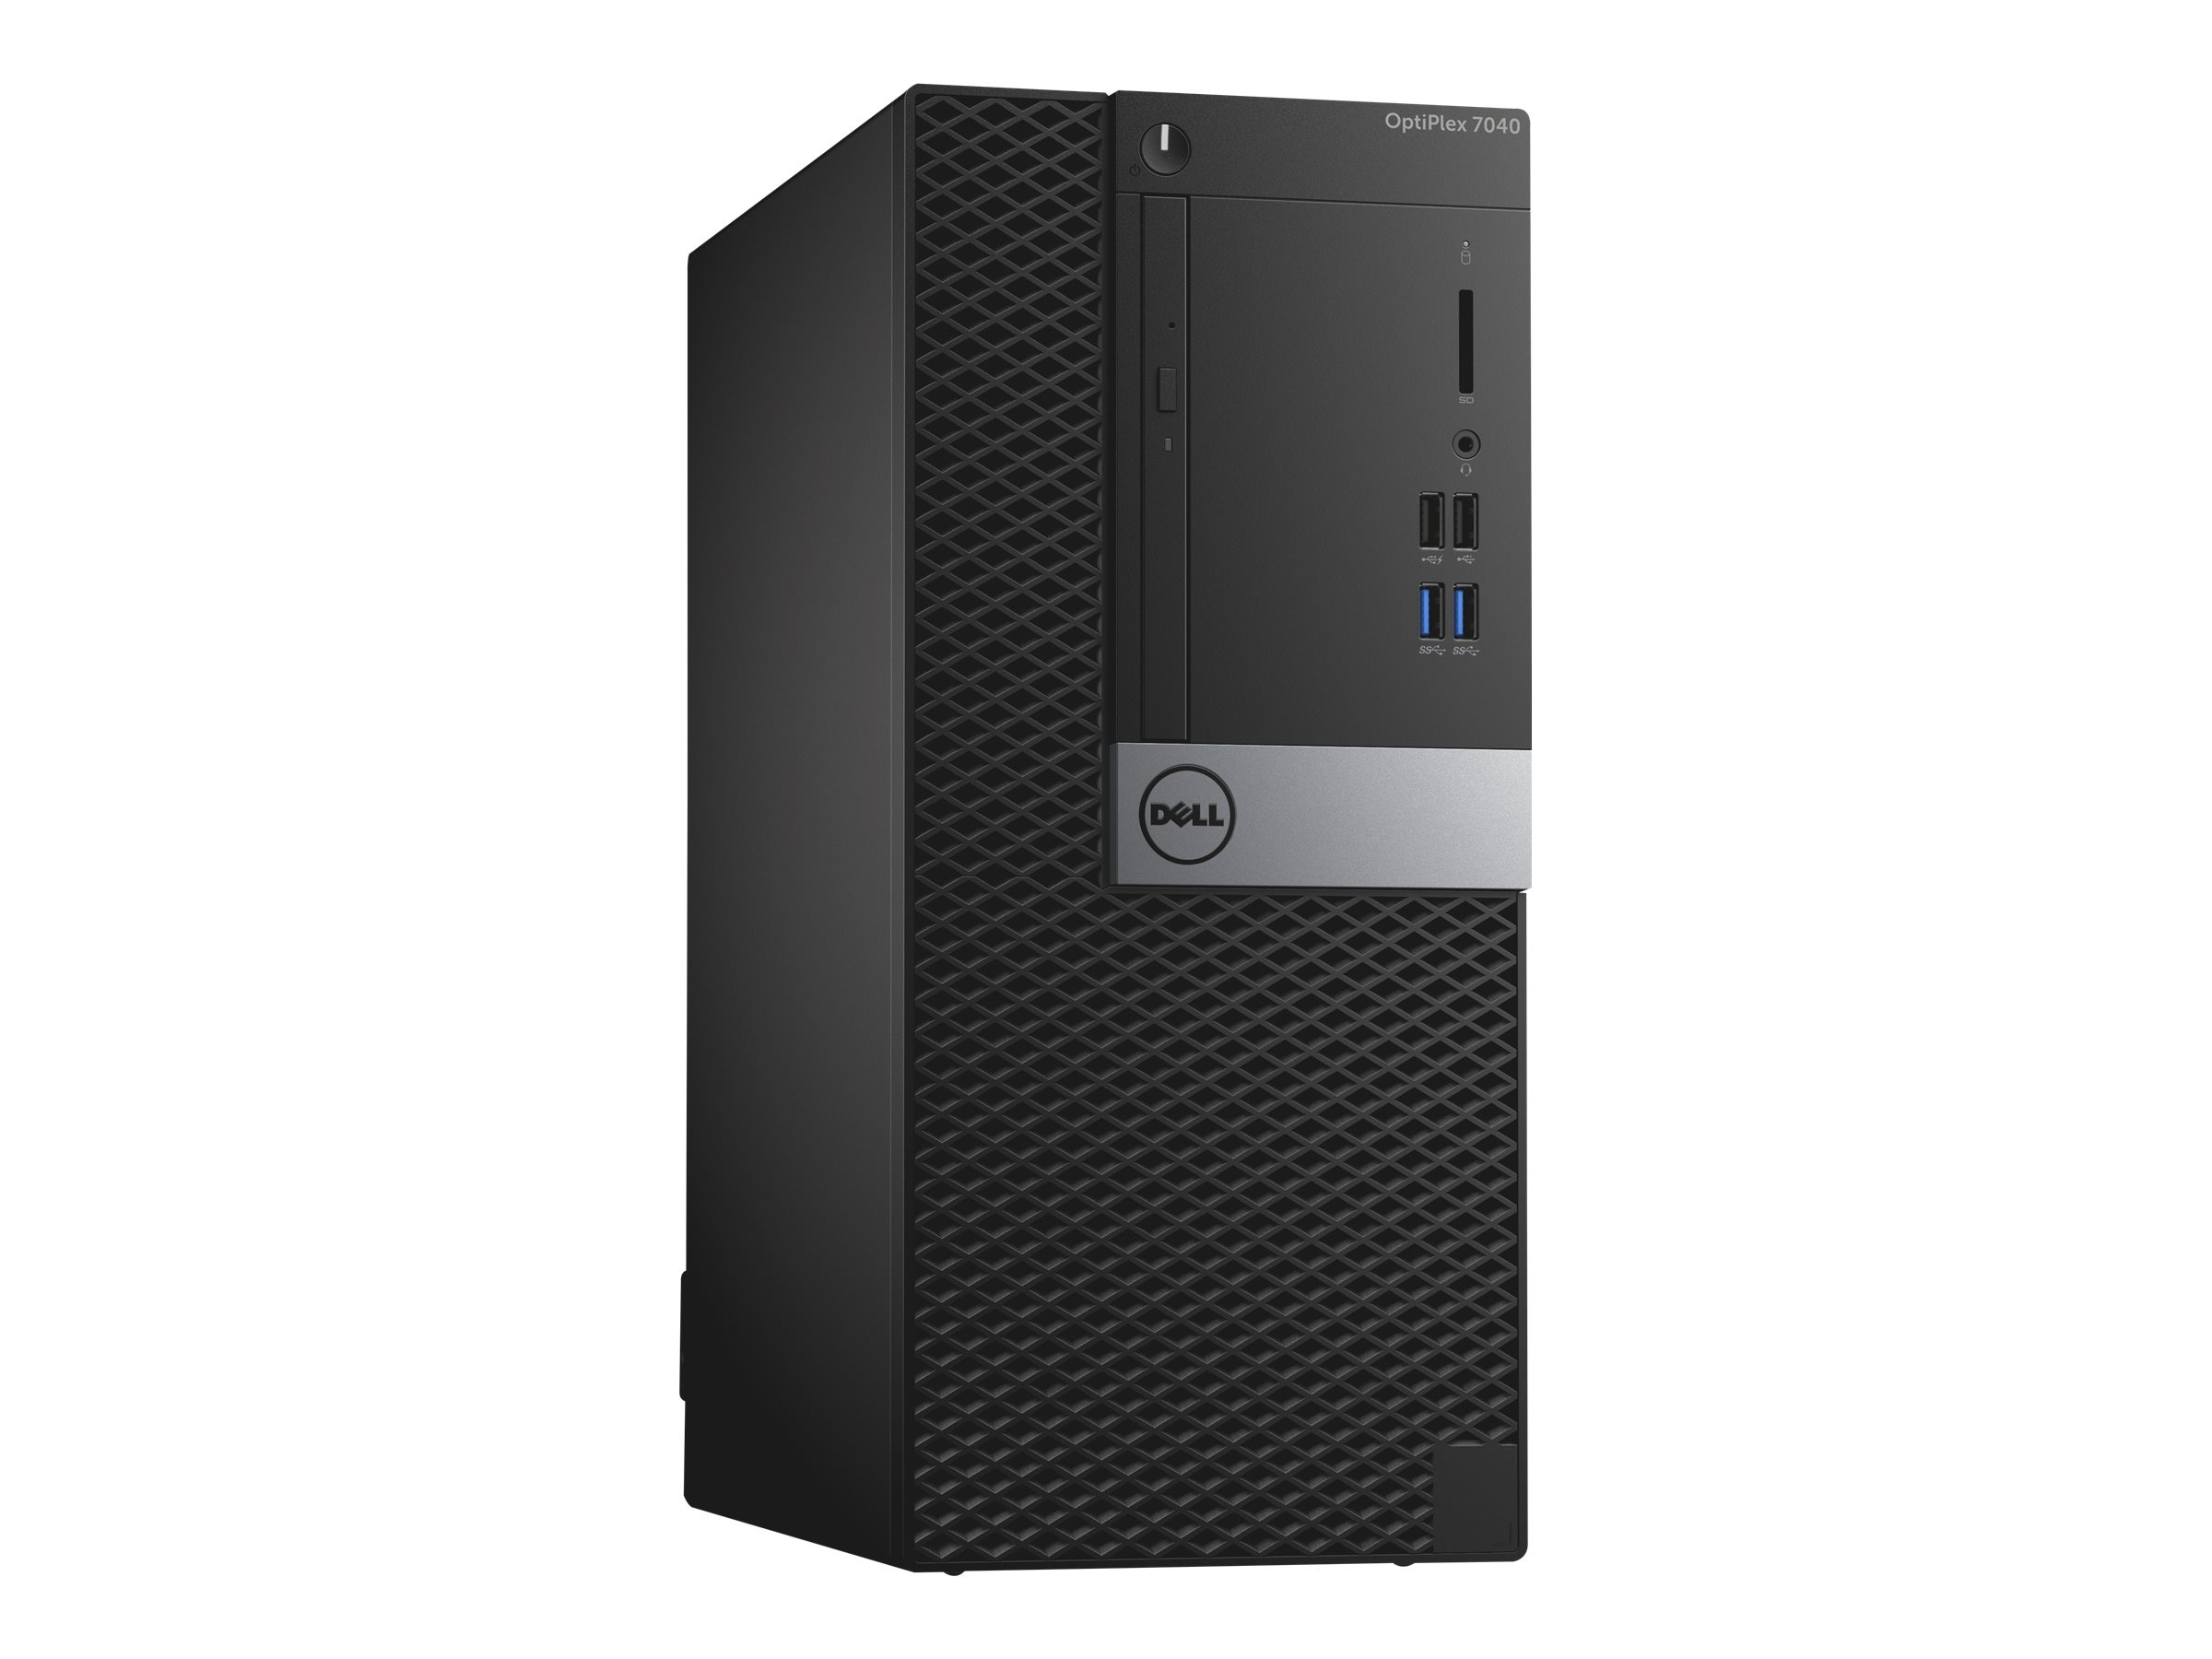 Dell OptiPlex 7040 3.2GHz 8GB RAM 500GB hard drive, M45JN